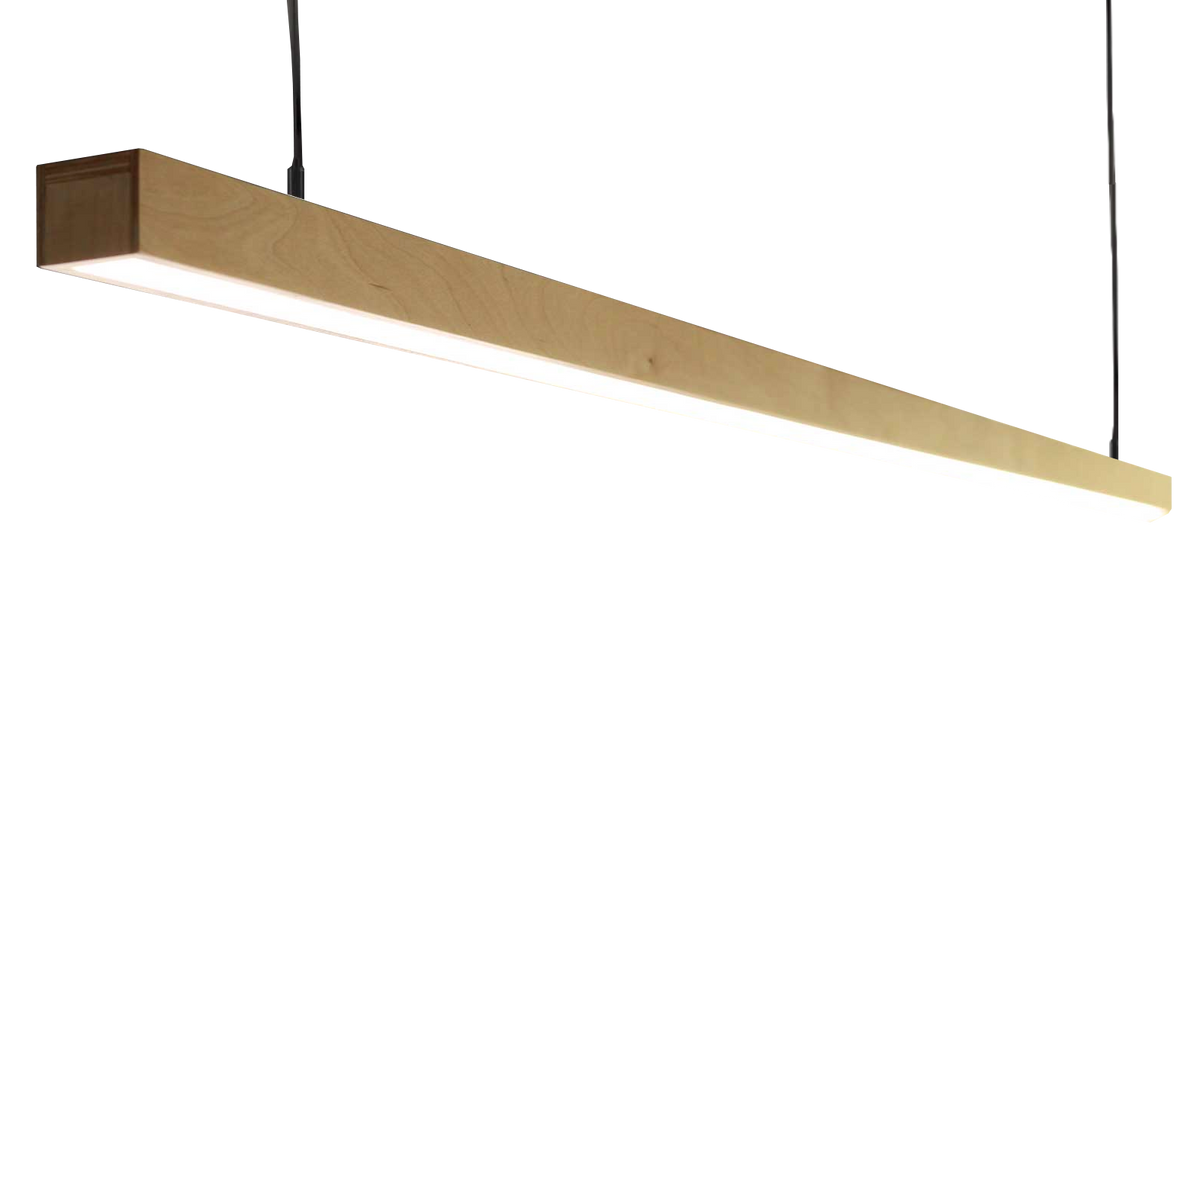 Black Maple Kurtz Hanging Linear Light